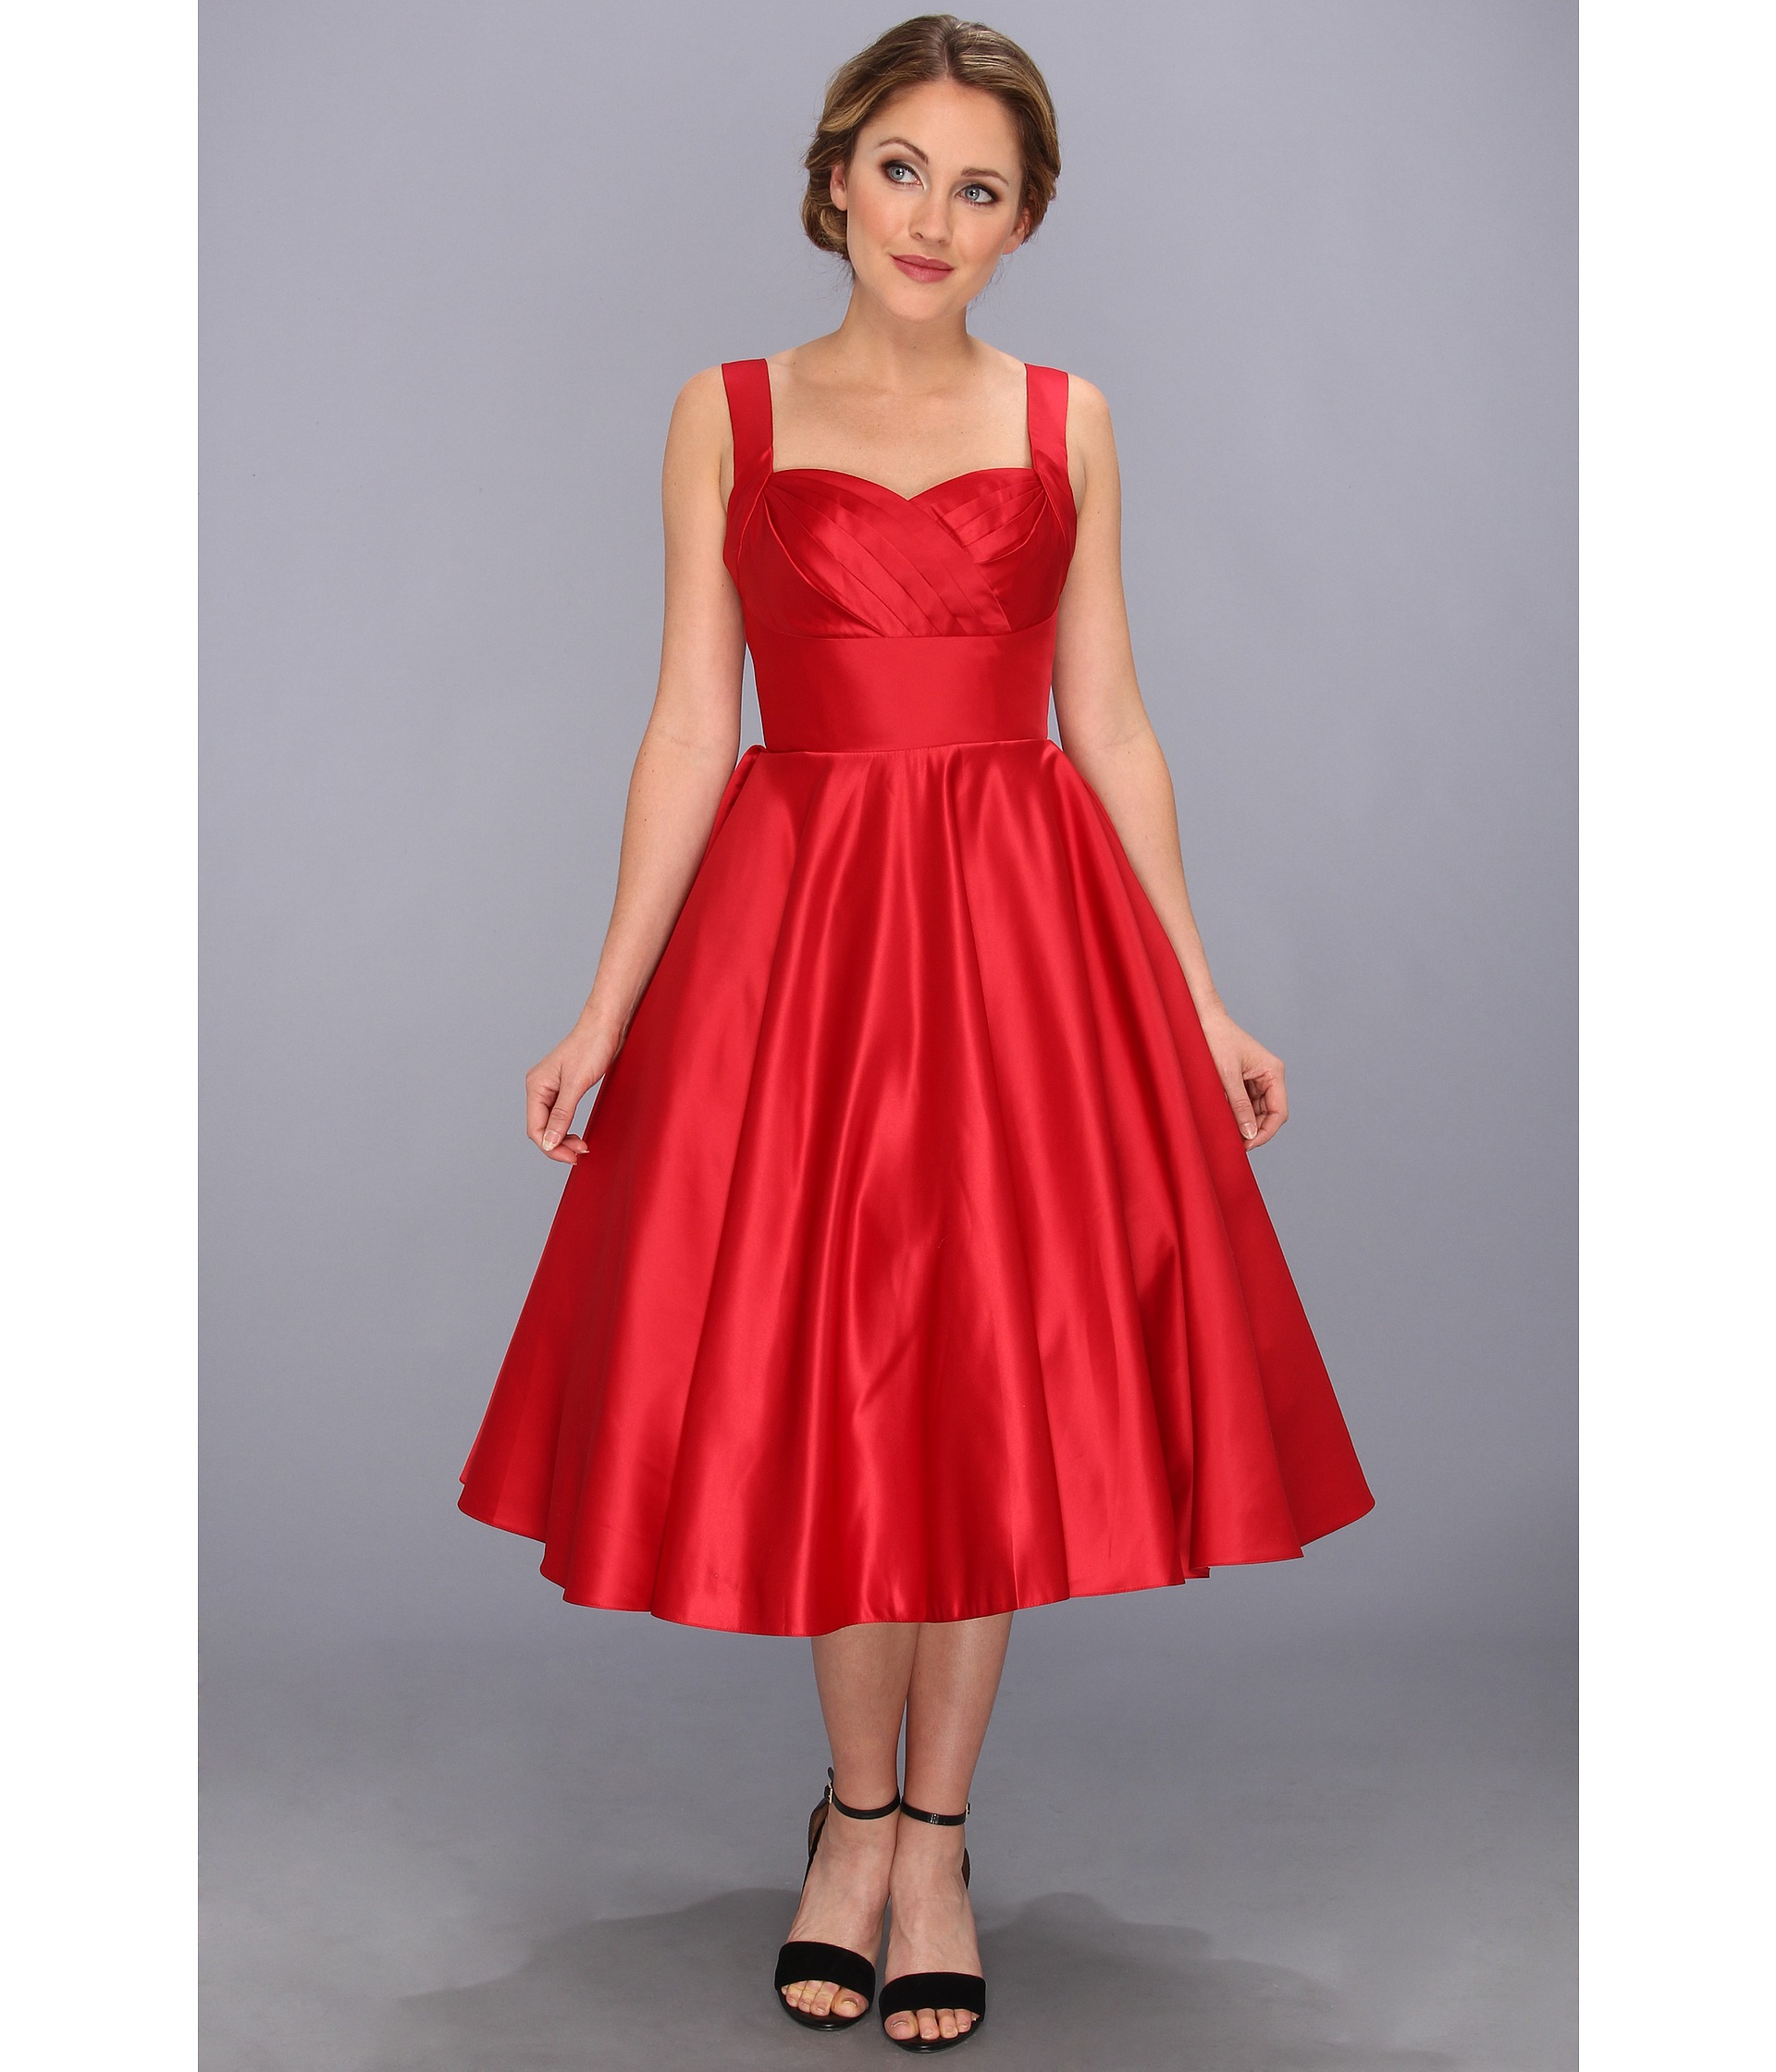 Silver Stars Alissa Red Dress 1 Pictures to pin on Pinterest